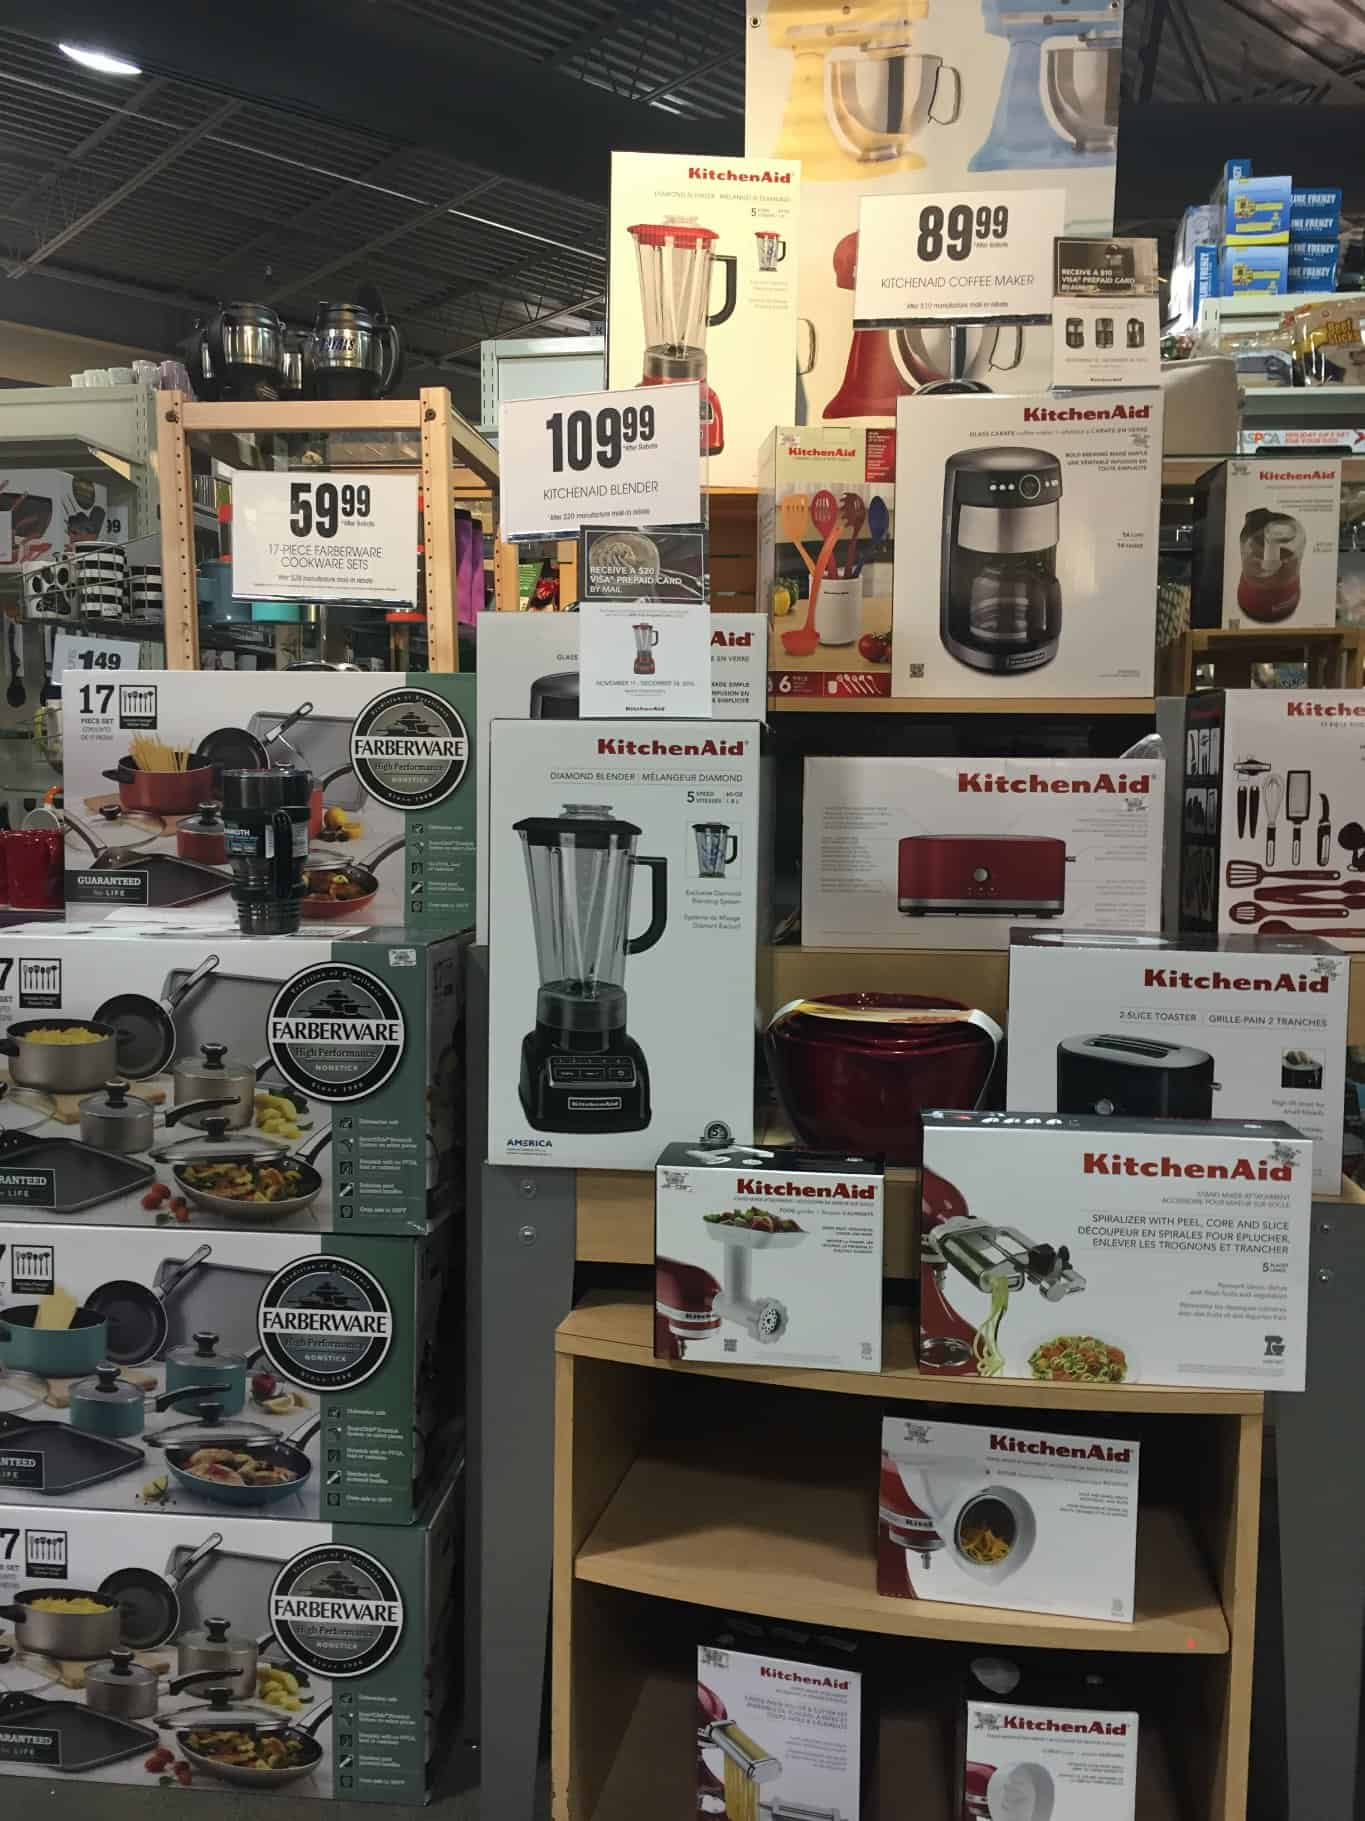 Kitchenaid Attachments at Gordmans